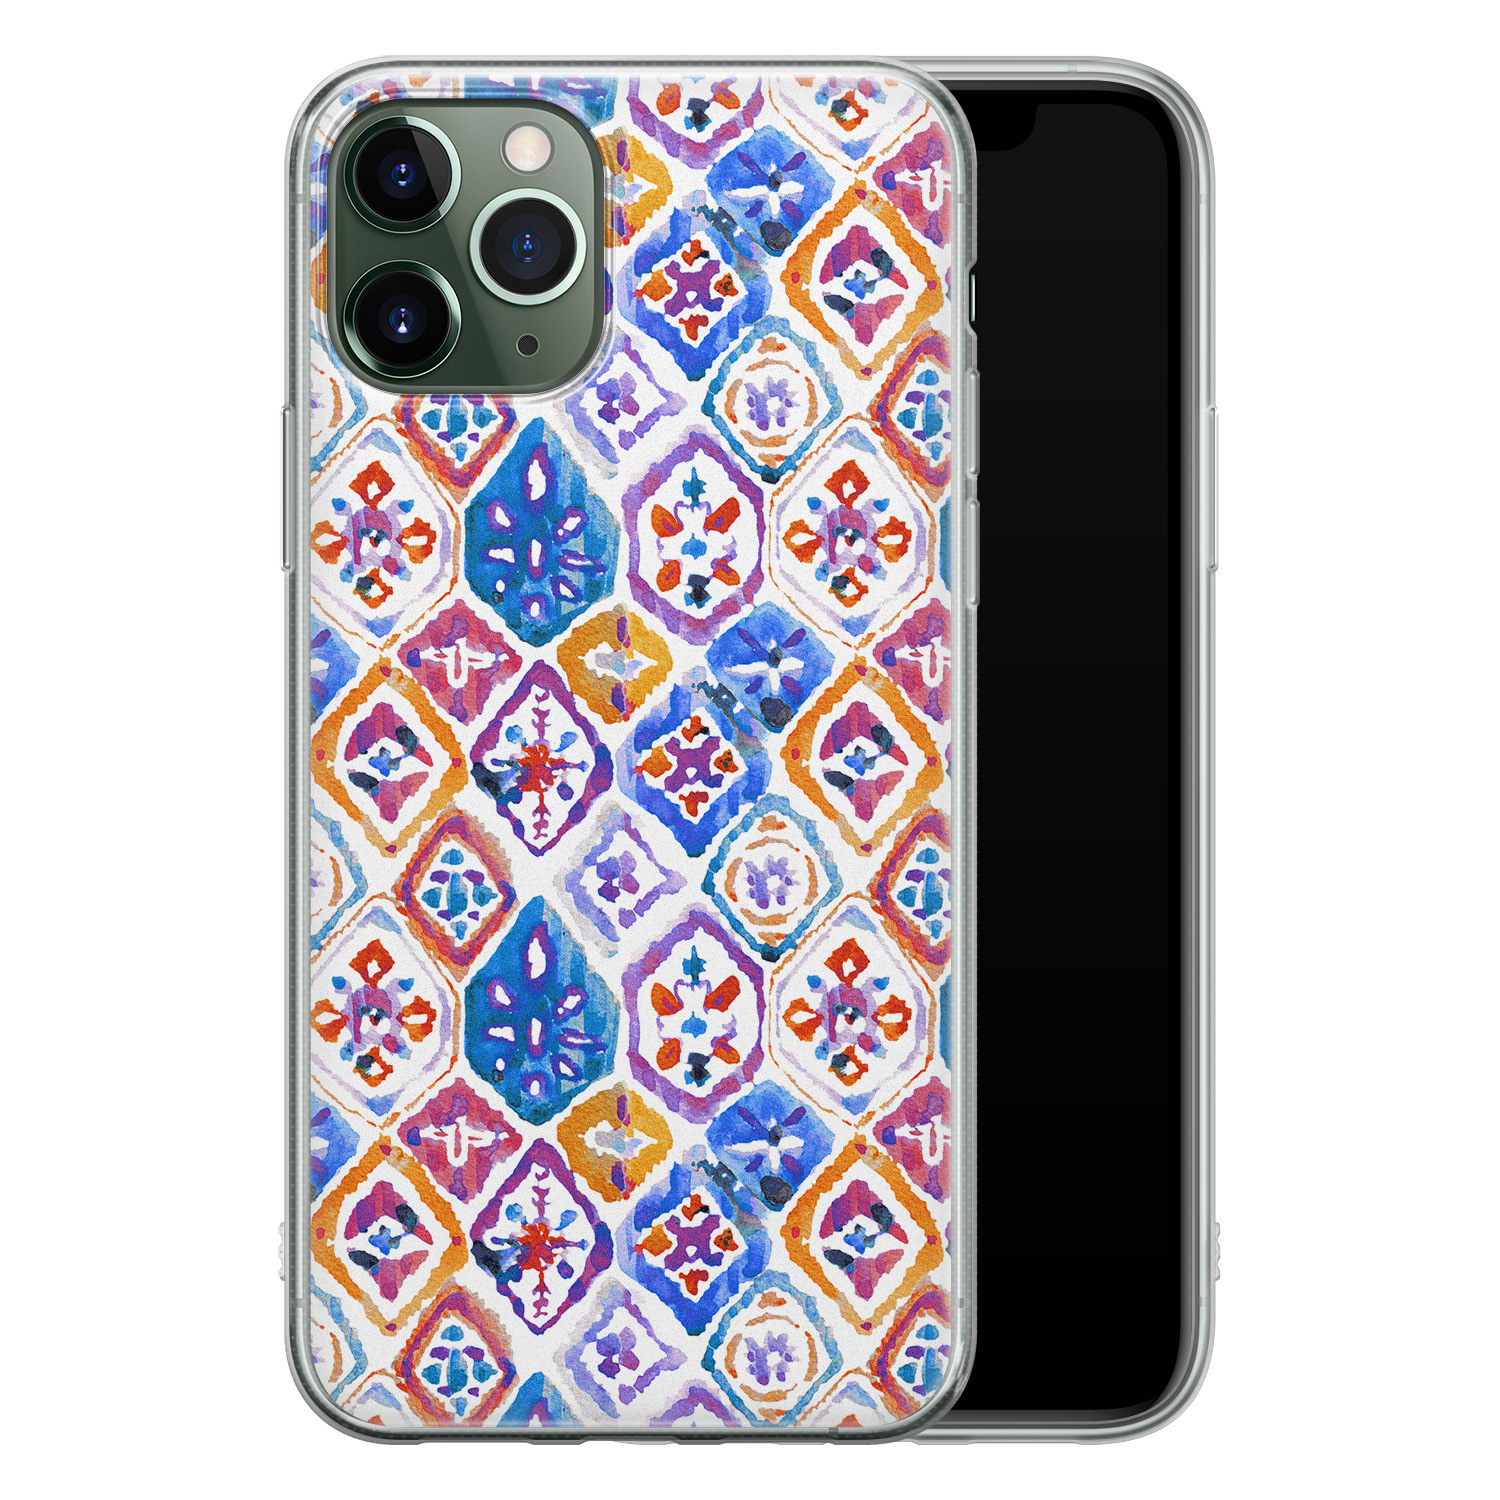 iPhone 11 Pro Max siliconen hoesje - Boho vibe